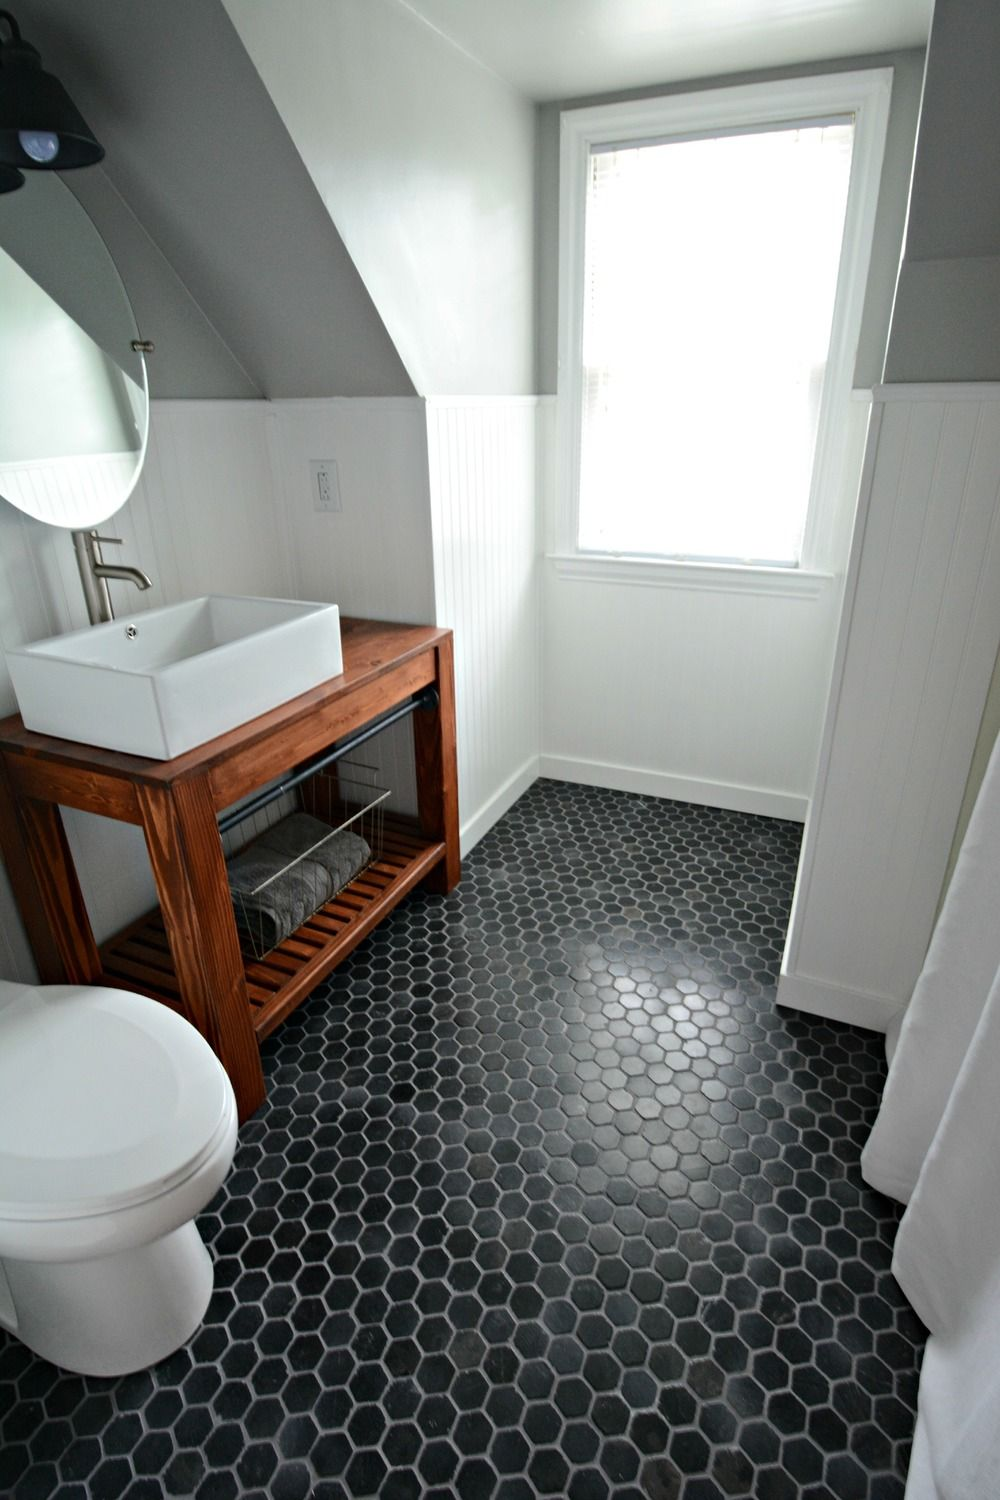 Small Bath Remodel Part Dos | bathrooms | Pinterest | Argos, Paint on gardening floor ideas, carpet floor ideas, bathroom flooring, room floor ideas, diy floor ideas, beach floor ideas, door floor ideas, small sunroom floor ideas, bathroom vanities, shower floor ideas, porch floor ideas, bathroom tile, house floor ideas, black floor ideas, bathroom with wood floors, basement floor ideas, bath floor ideas, loft floor ideas, backsplash ideas, entrance hall floor ideas,